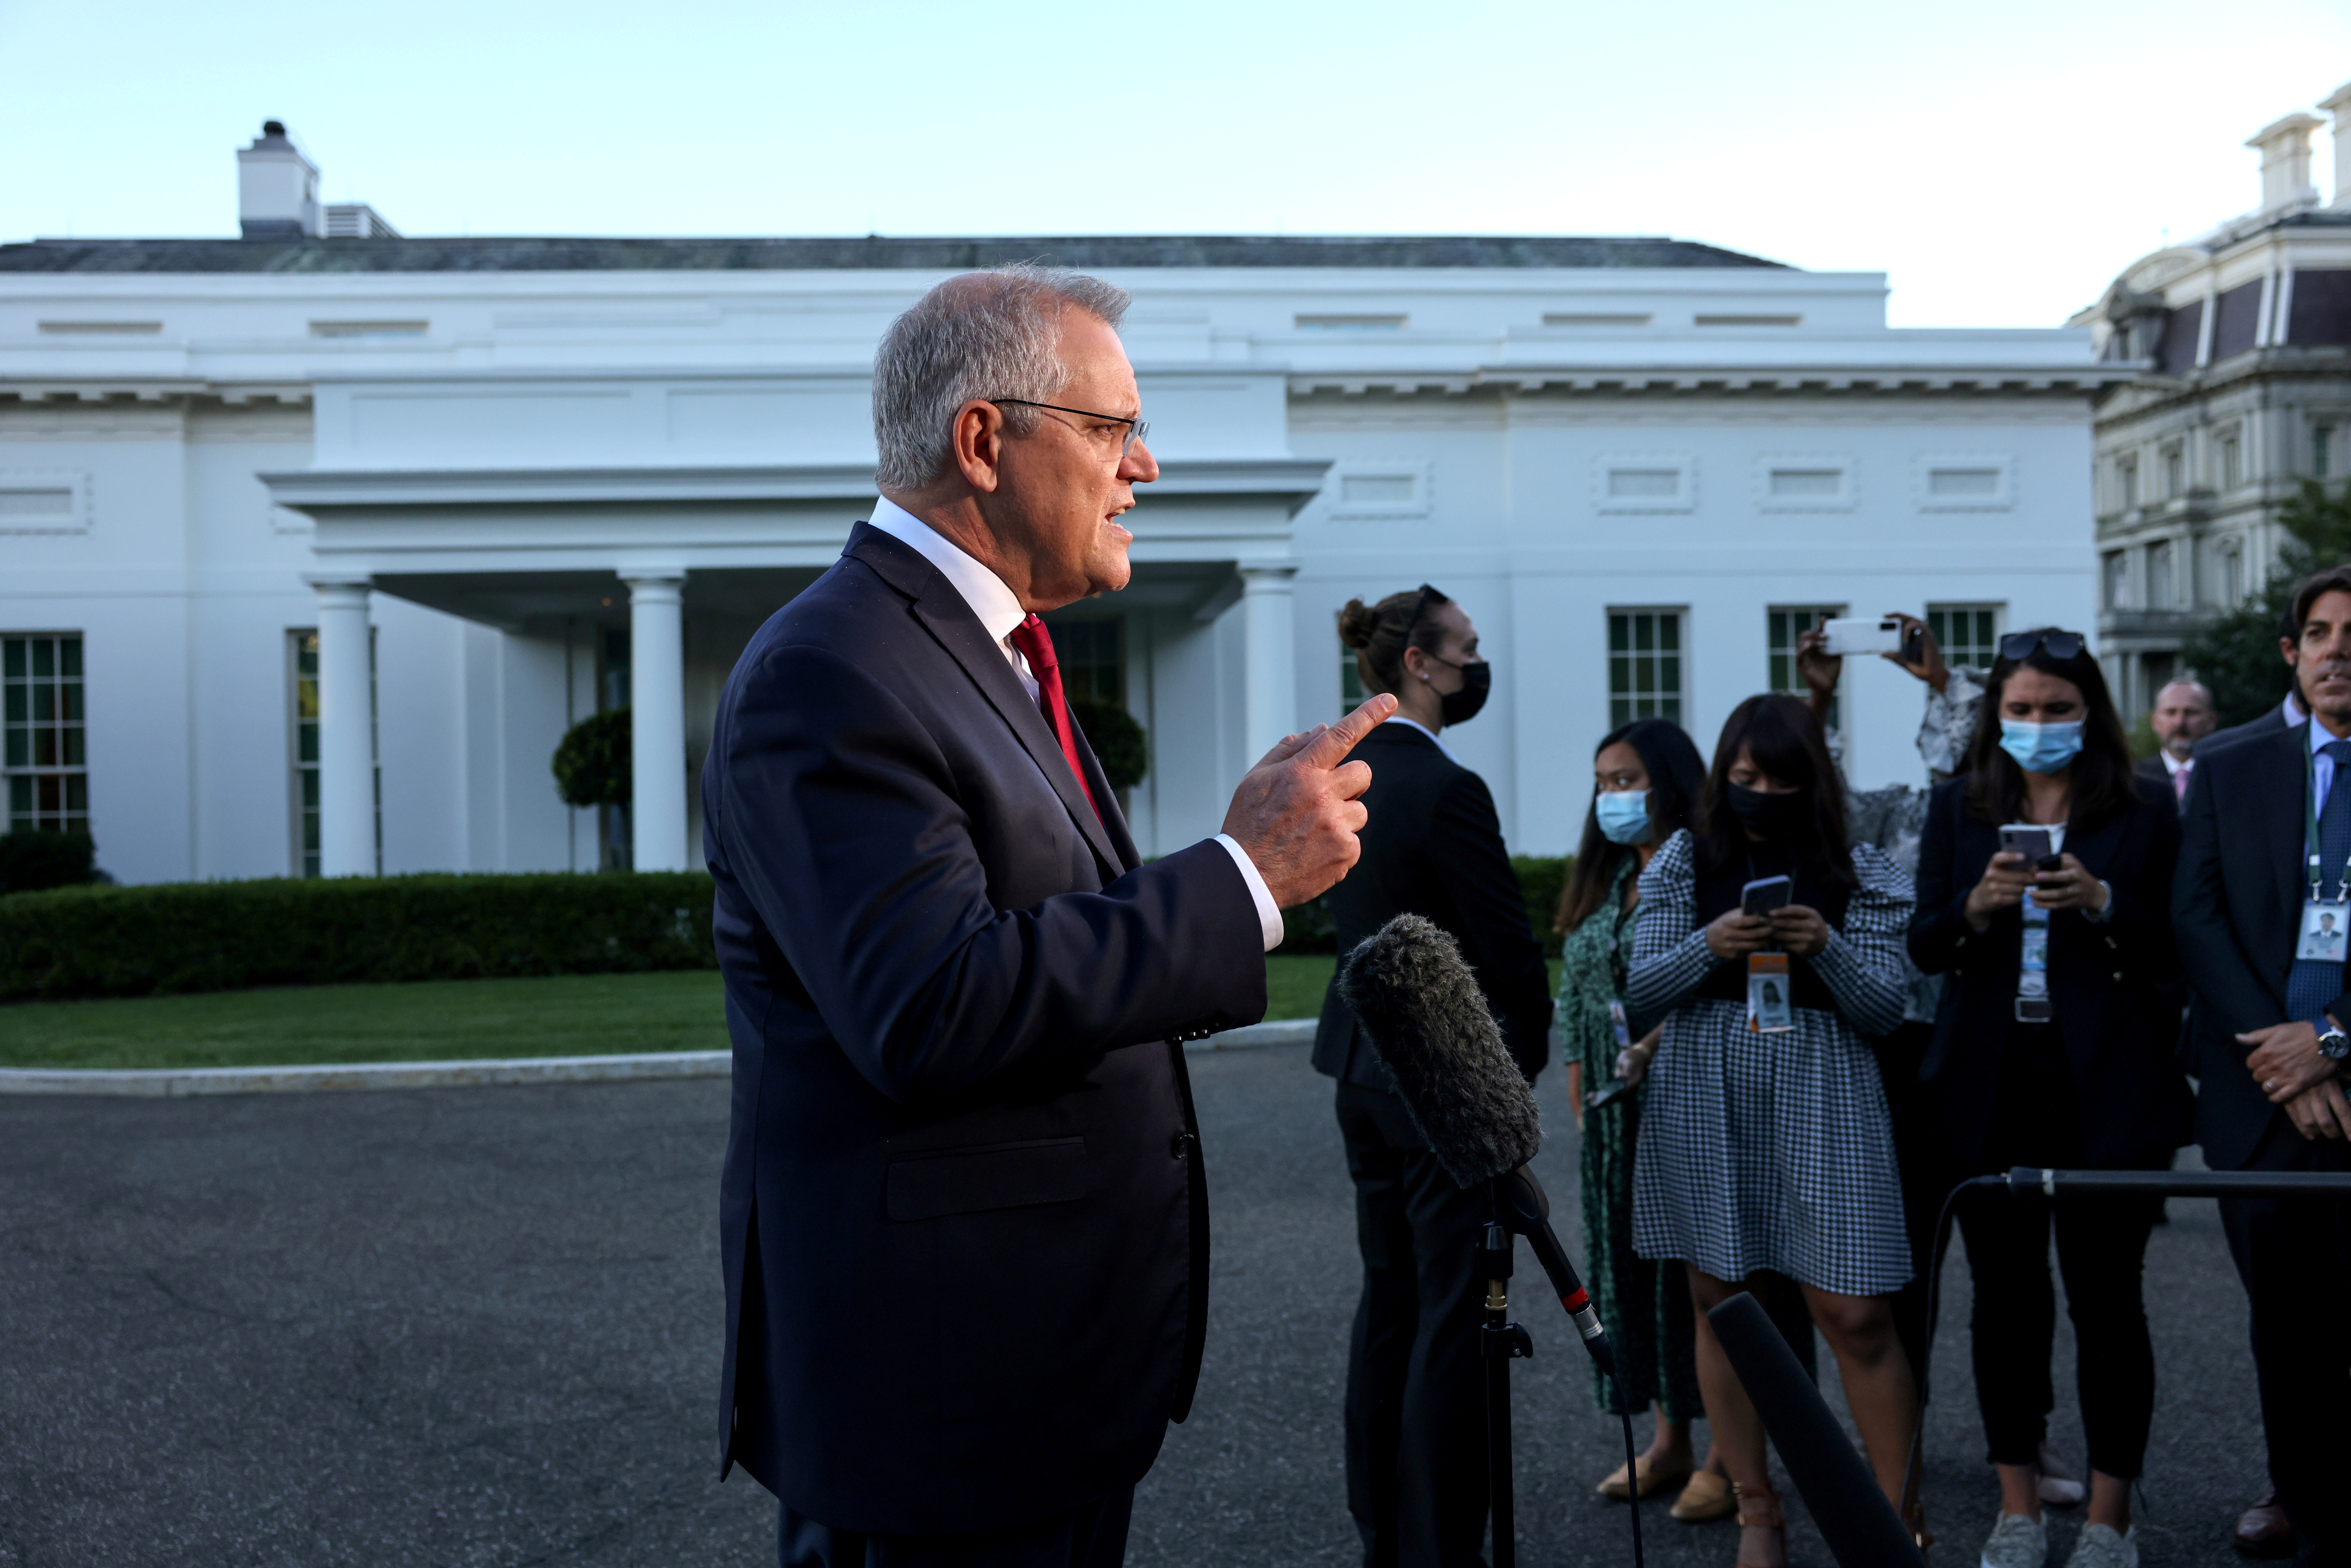 Australia's Prime Minister Scott Morrison speaks with the media following a day of meetings with foreign counterparts at the White House in Washington, U.S., September 24, 2021. REUTERS/Evelyn Hockstein/File Photo